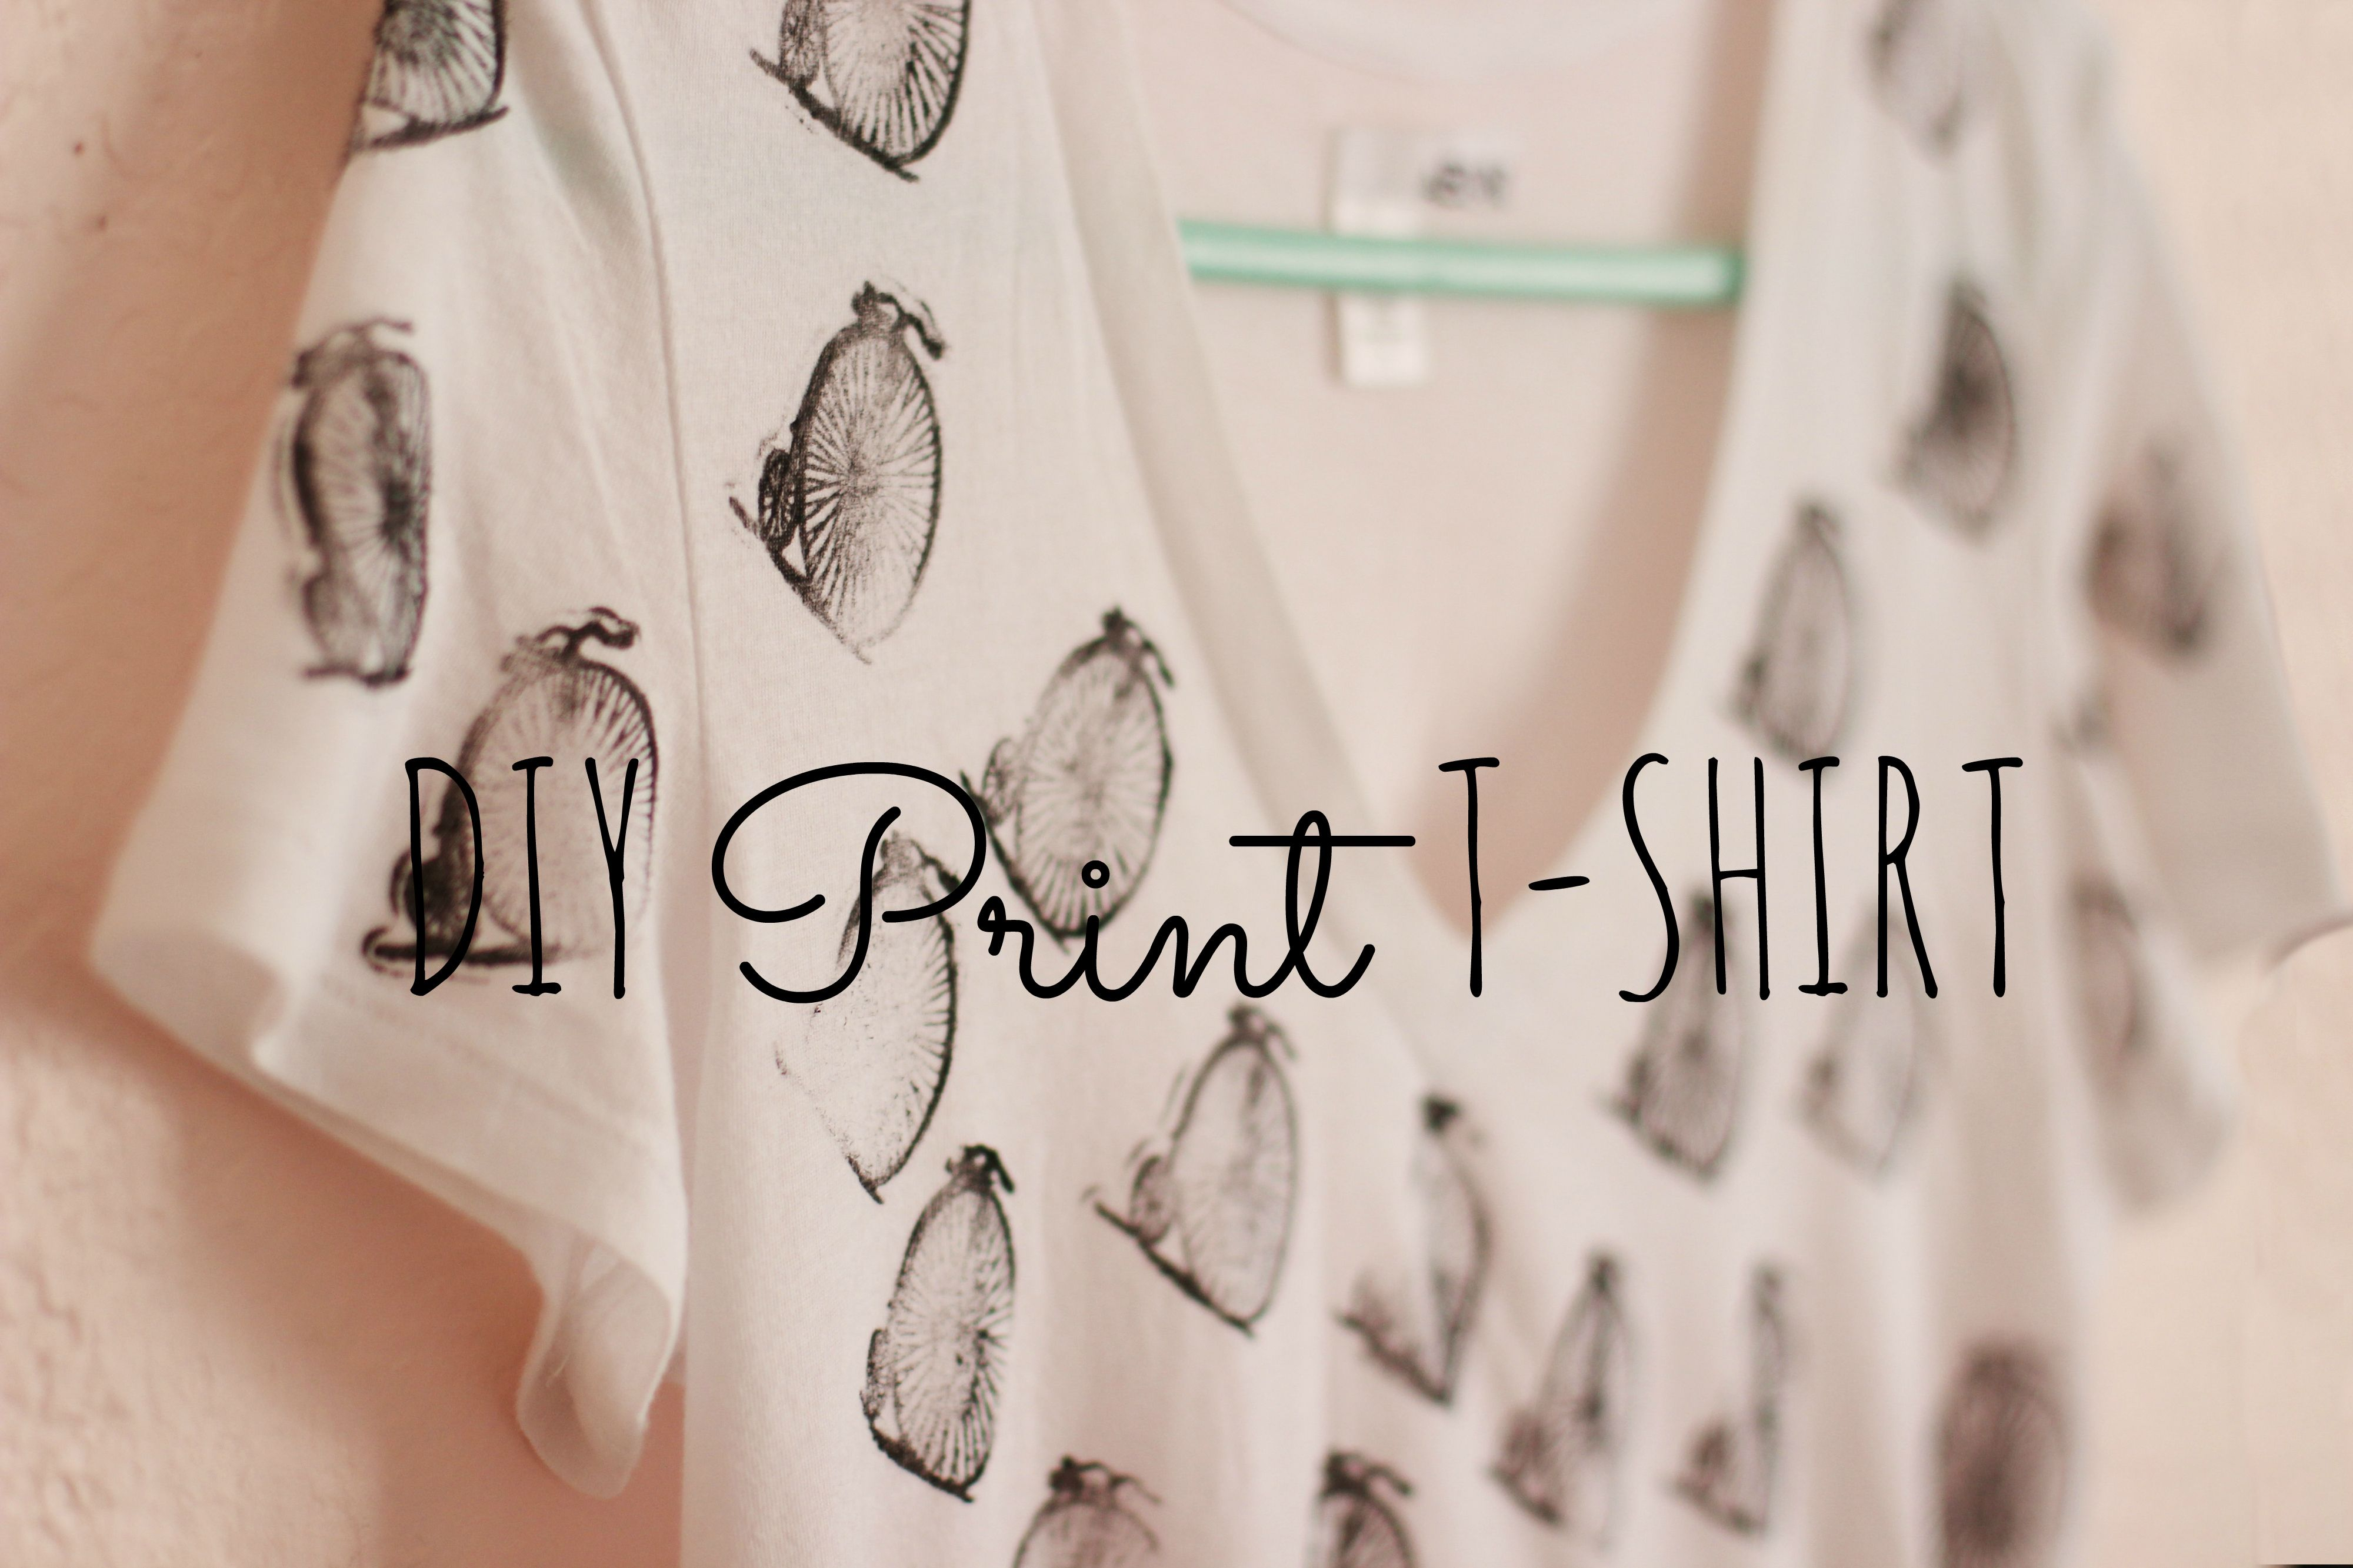 Diy rubber stamp print t shirt super easy i wanna for Stamp t shirt printing